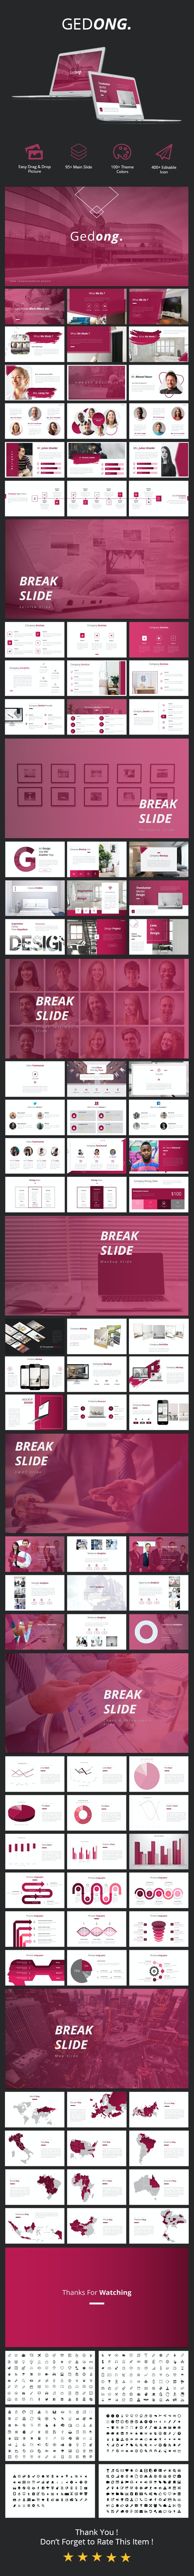 Gedong - Pitchdeck Powerpoint Template - Pitch Deck PowerPoint Templates